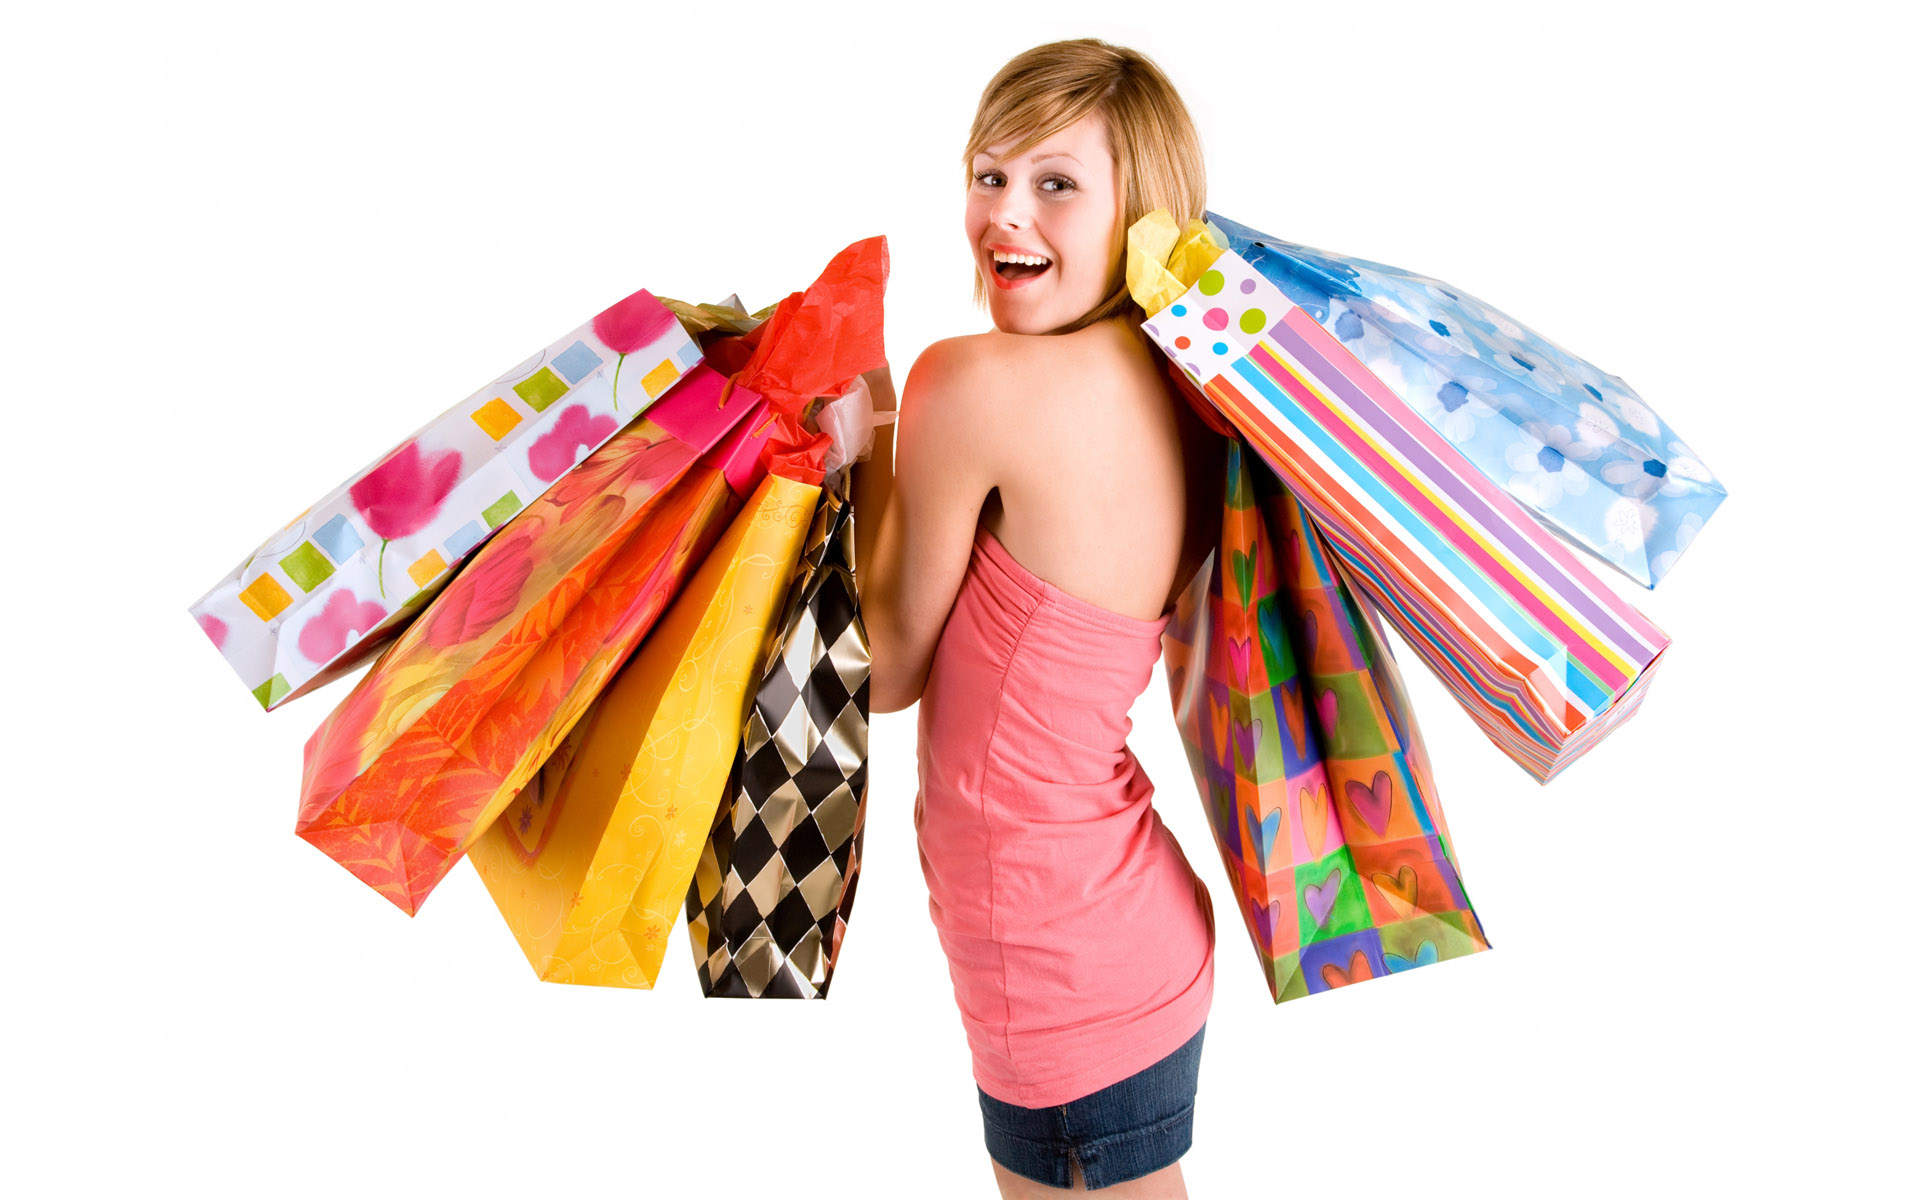 Totally, 100% Responsive Business - Women Shopping PNG HD